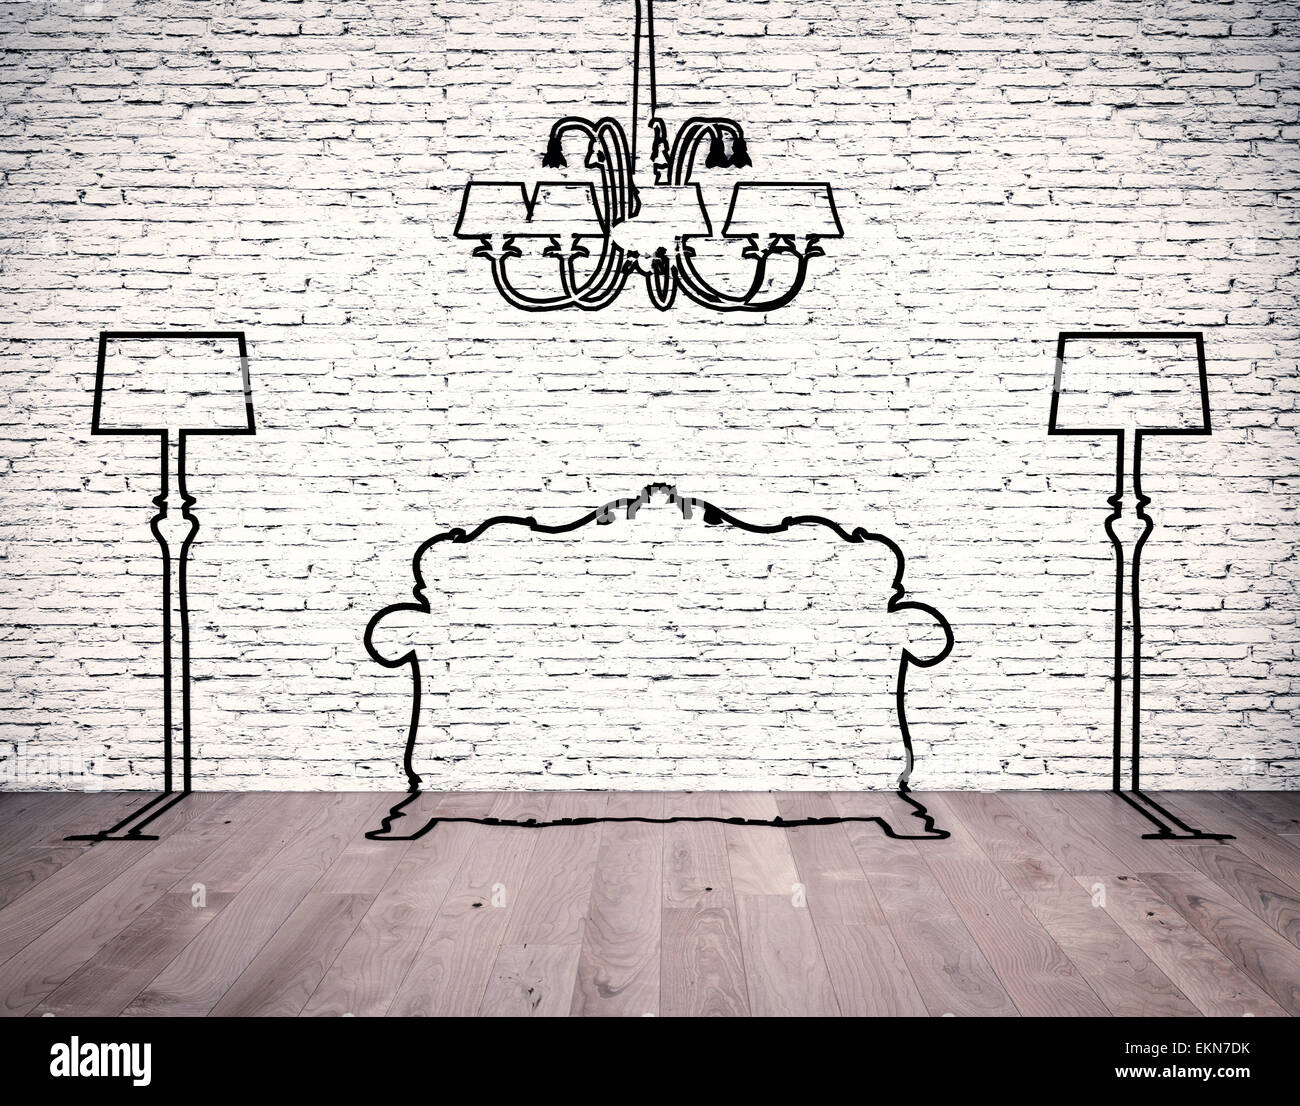 silhouettes of the furniture - Stock Image